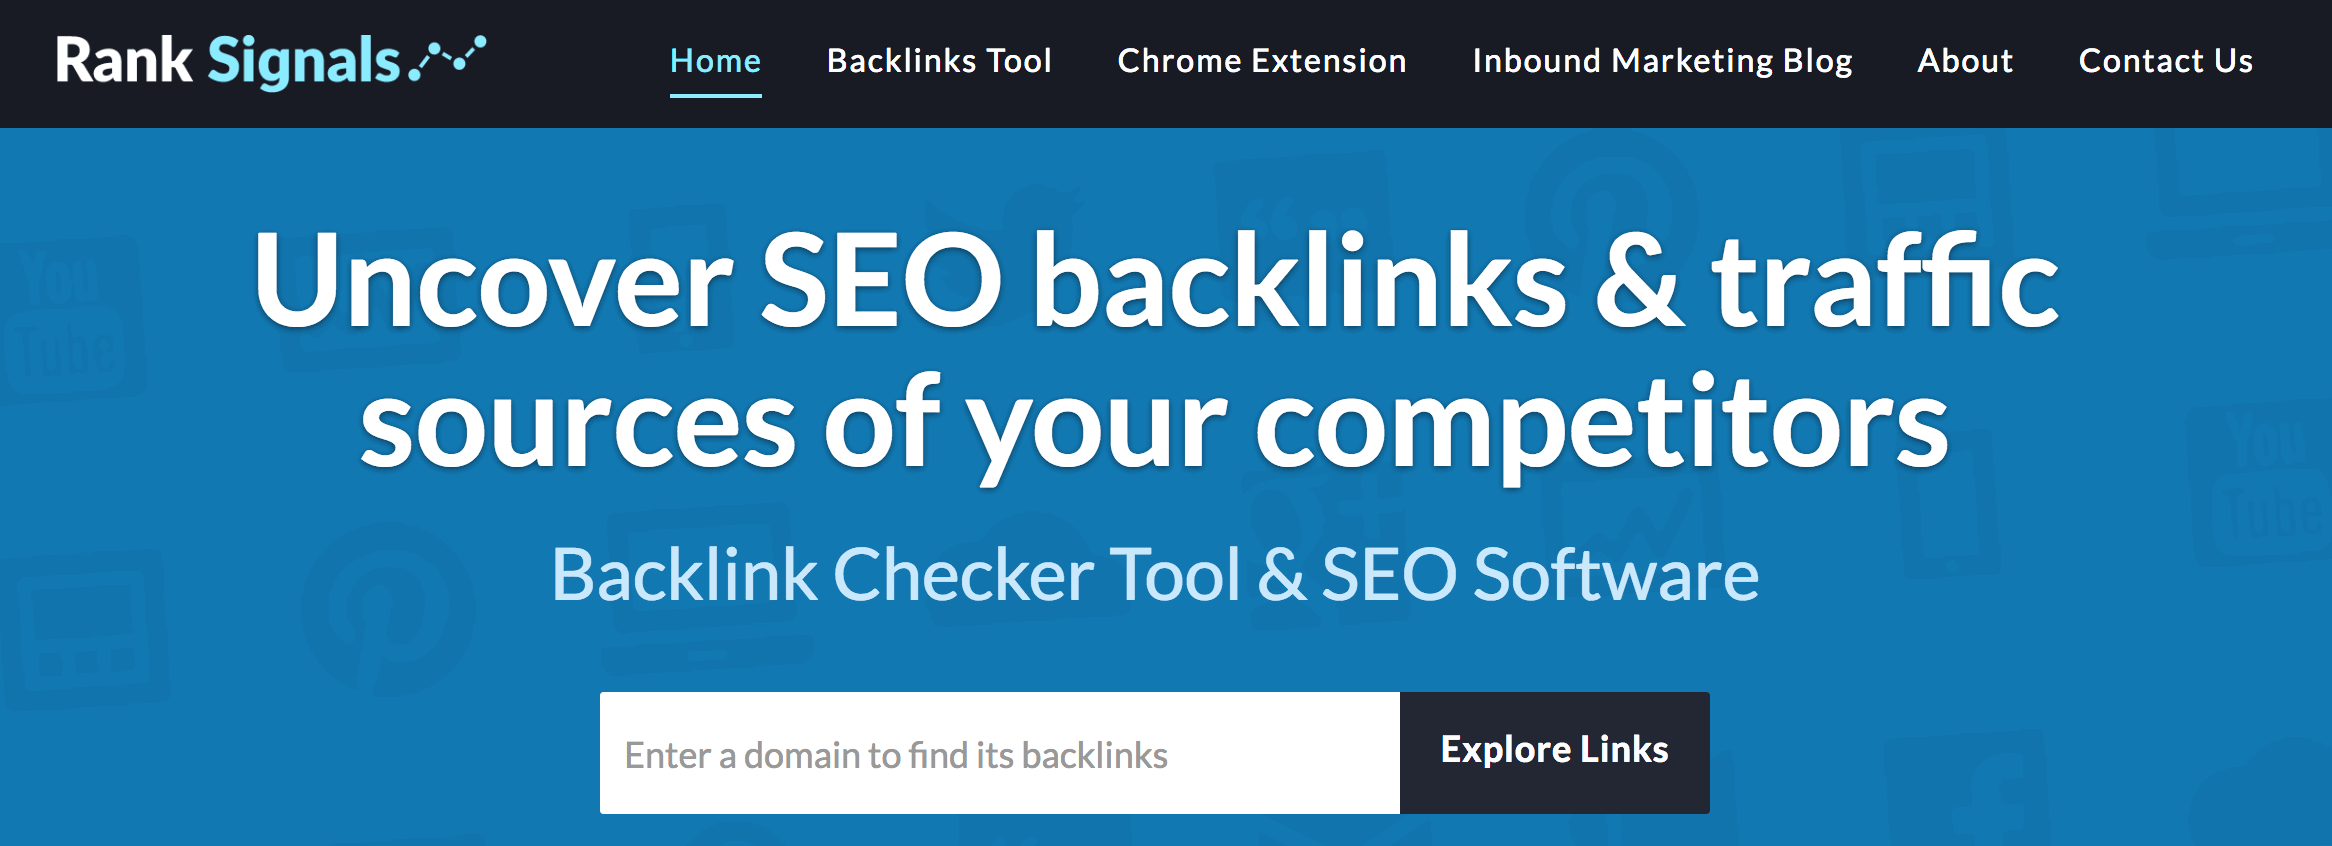 ranksignals competitor analysis tools